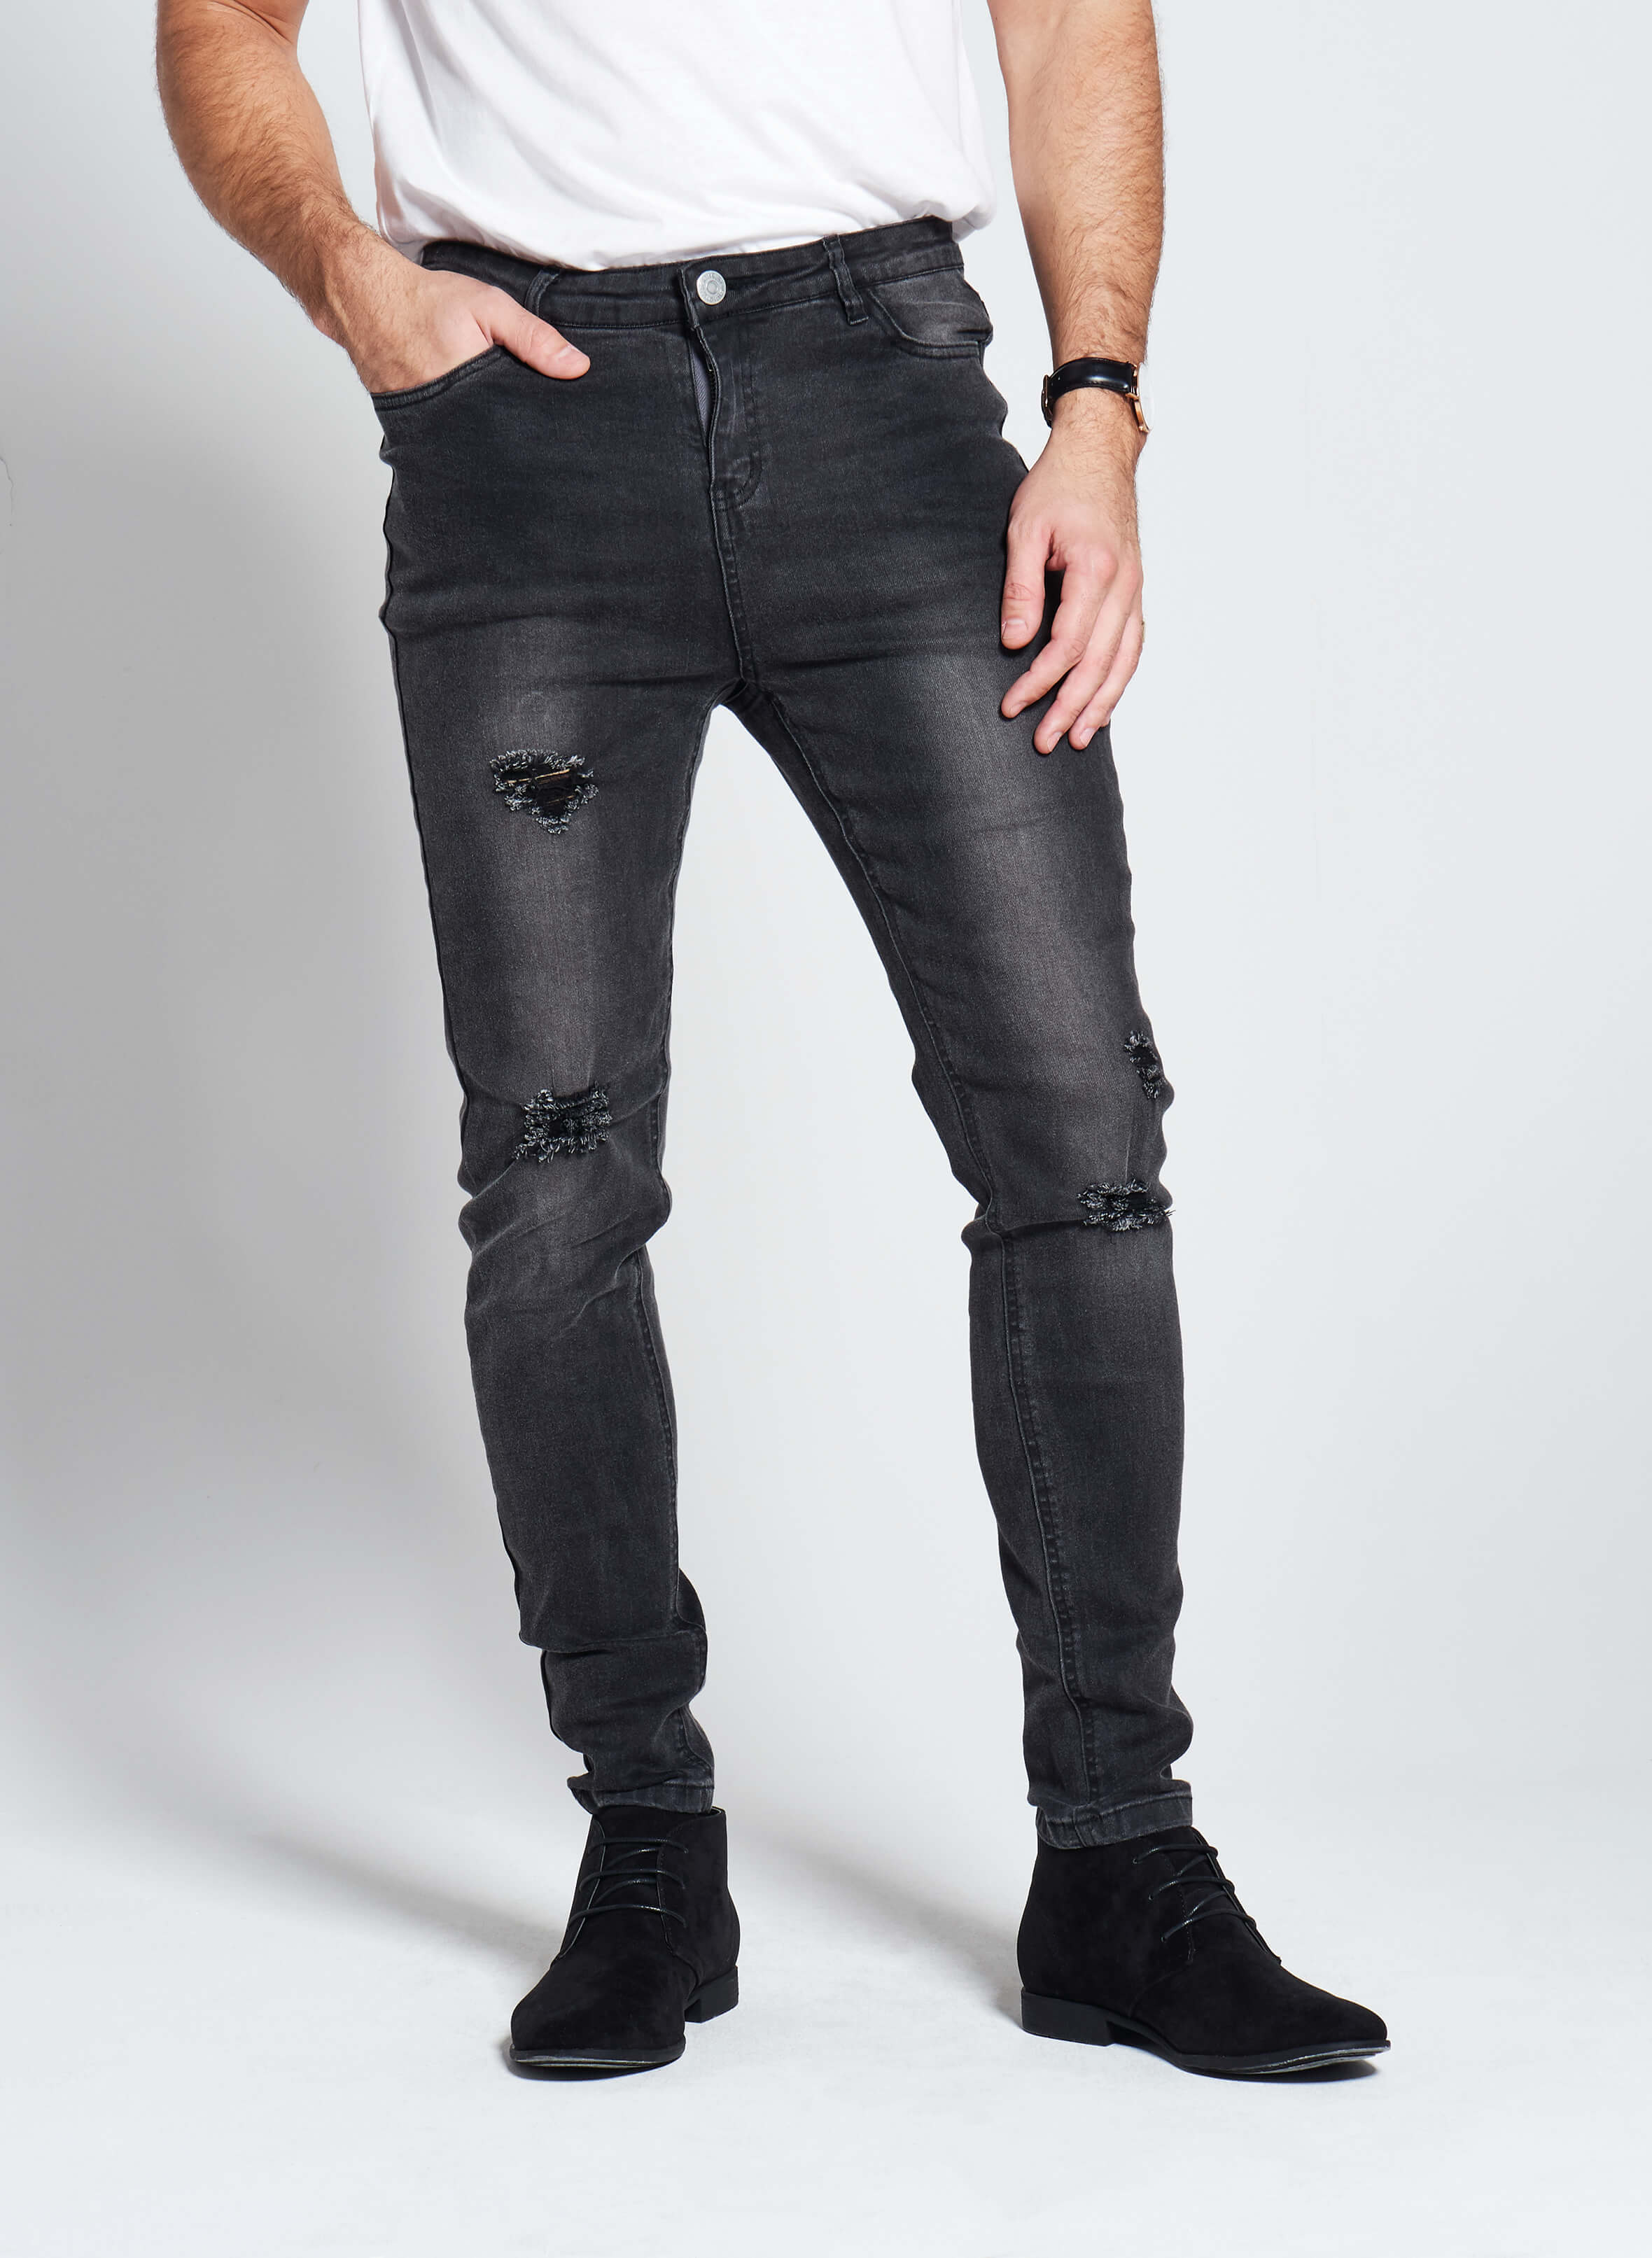 Denim Only® Slim Fit Jeans - Ripped Washed Black - Slim Fit